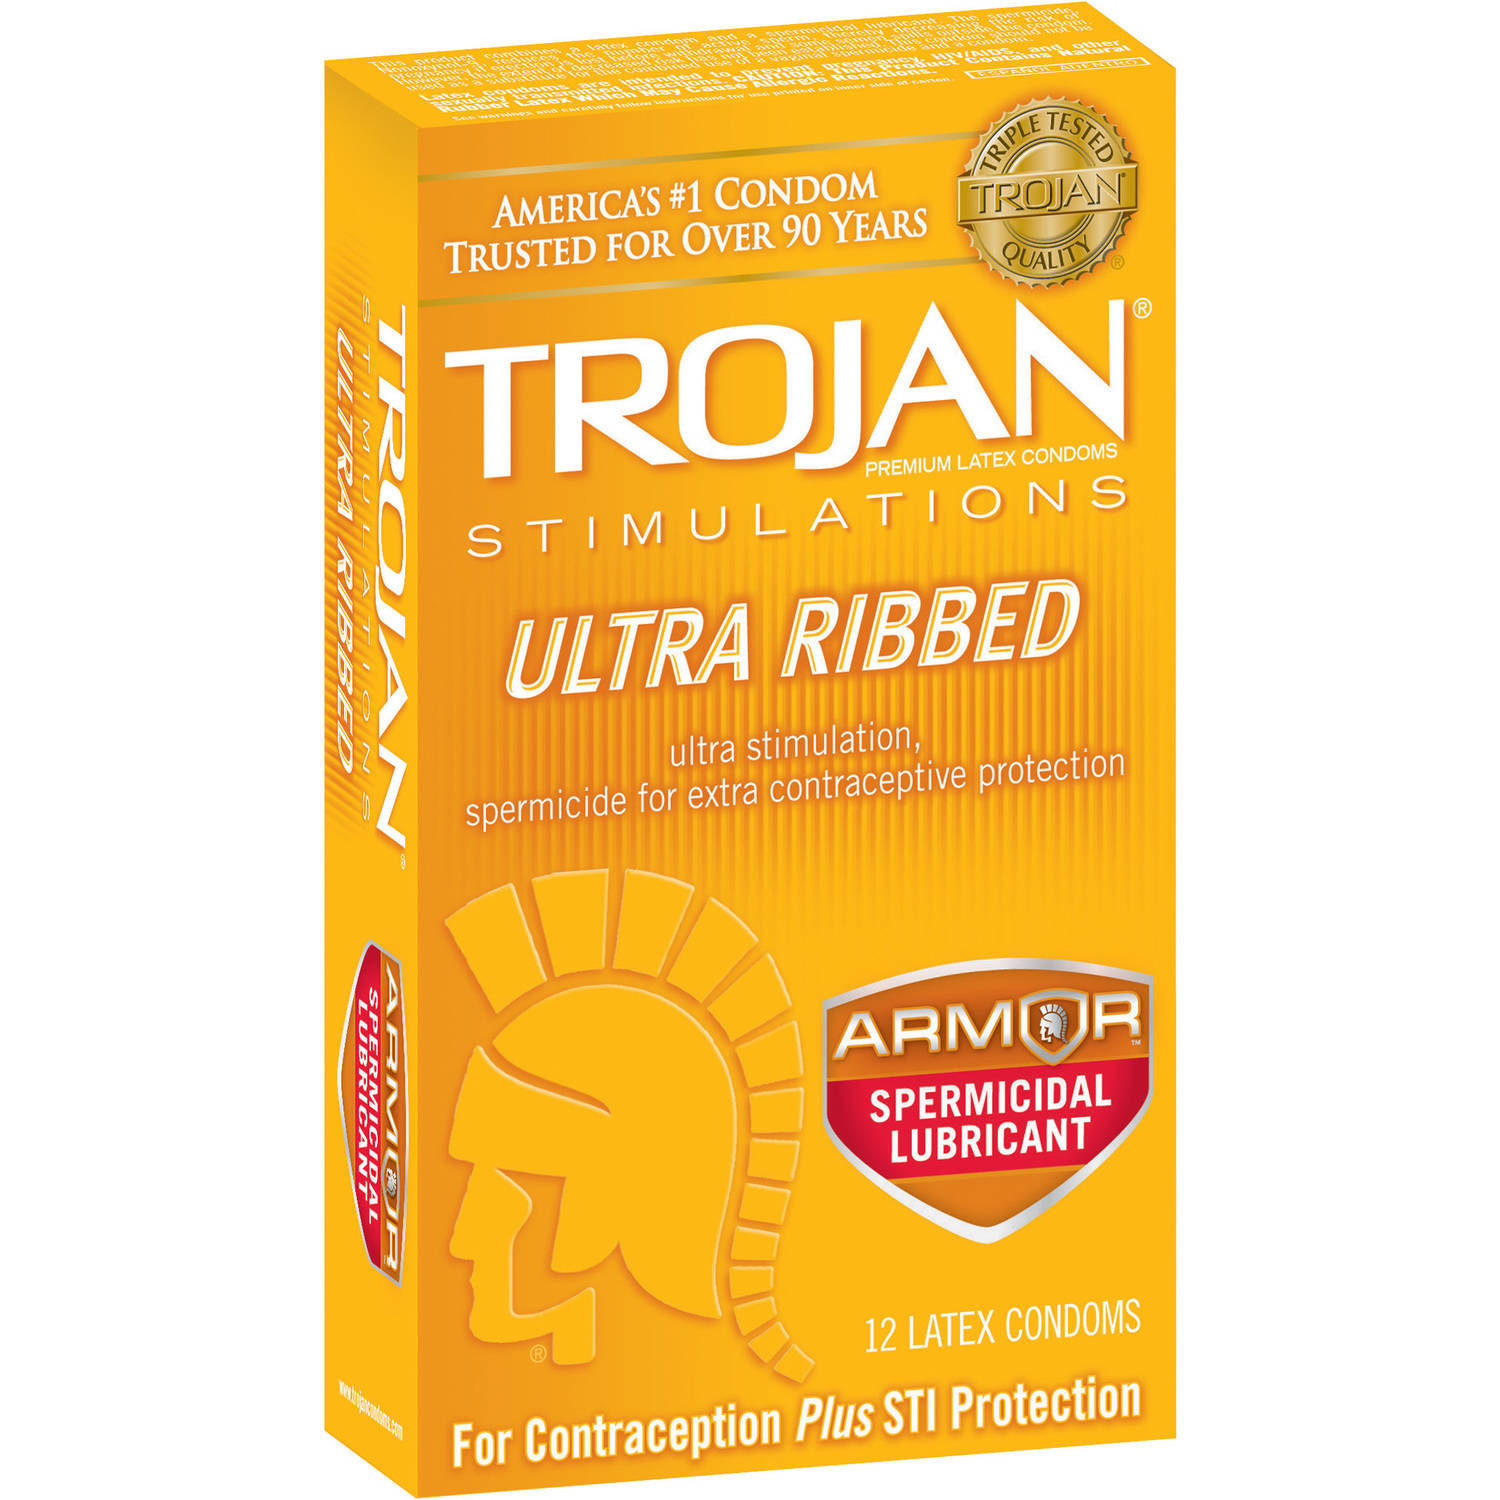 Trojan Stimulations Ultra Ribbed Armor Spermicidal Lubricant Latex Condoms, 12 count